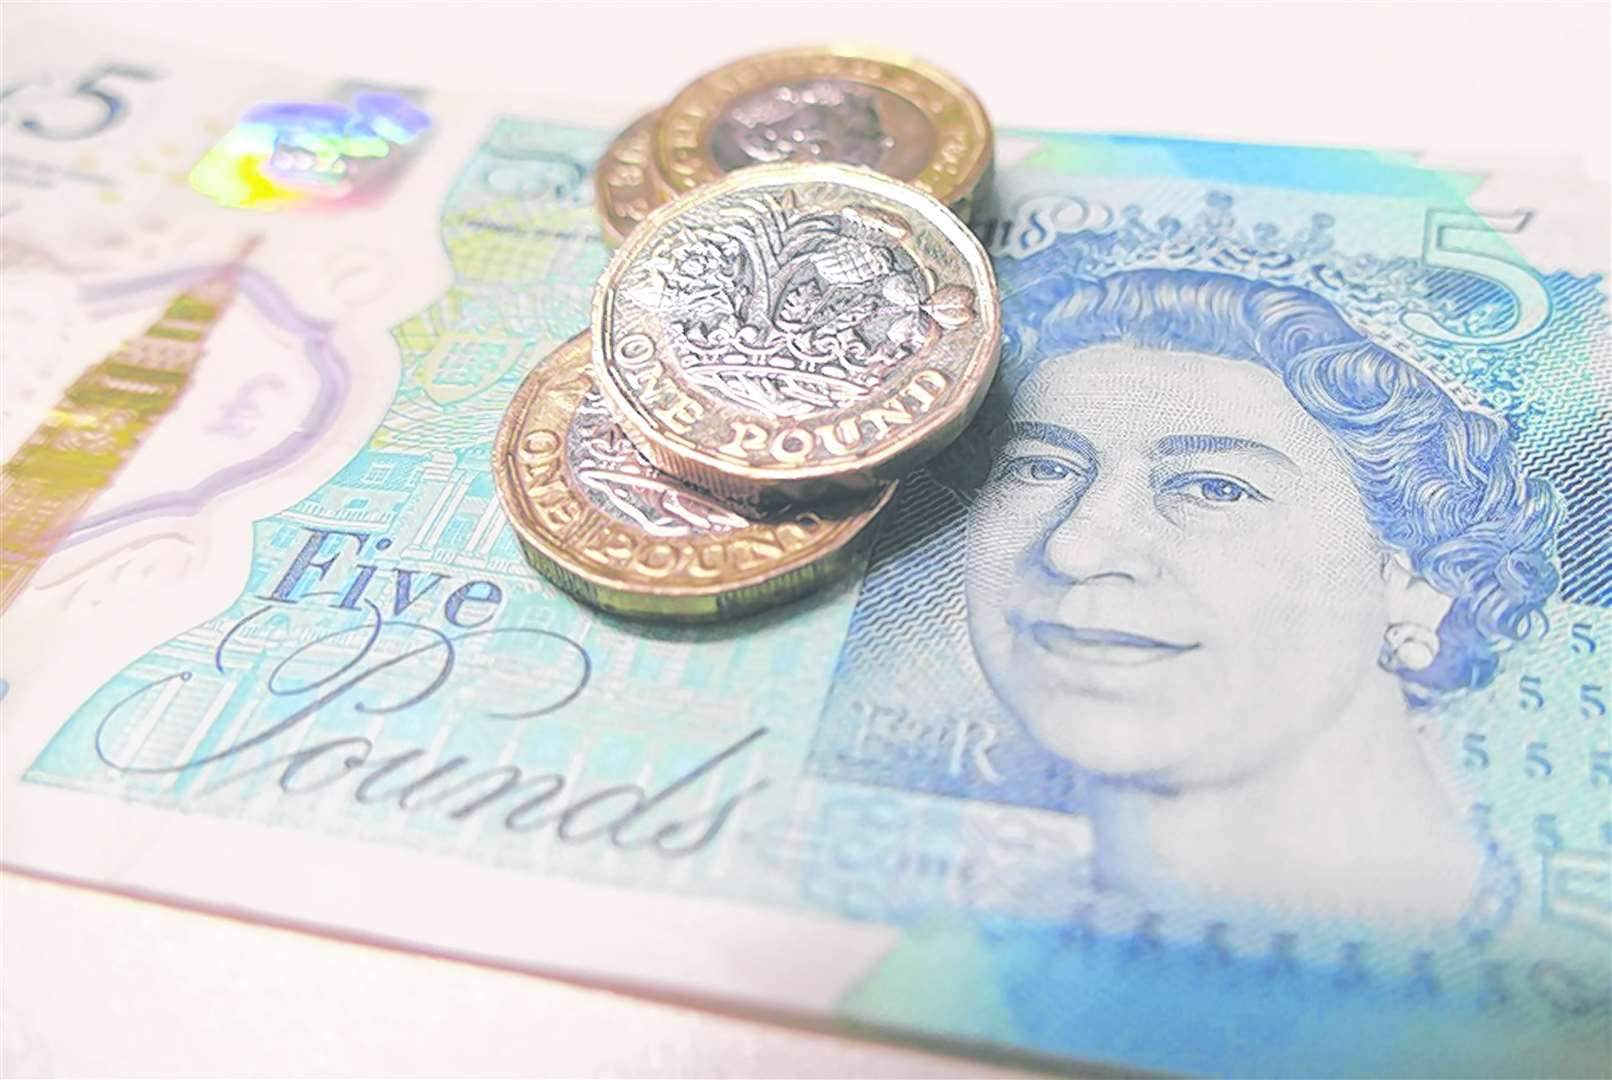 The Post Office has launched a campaign called Save Our Cash